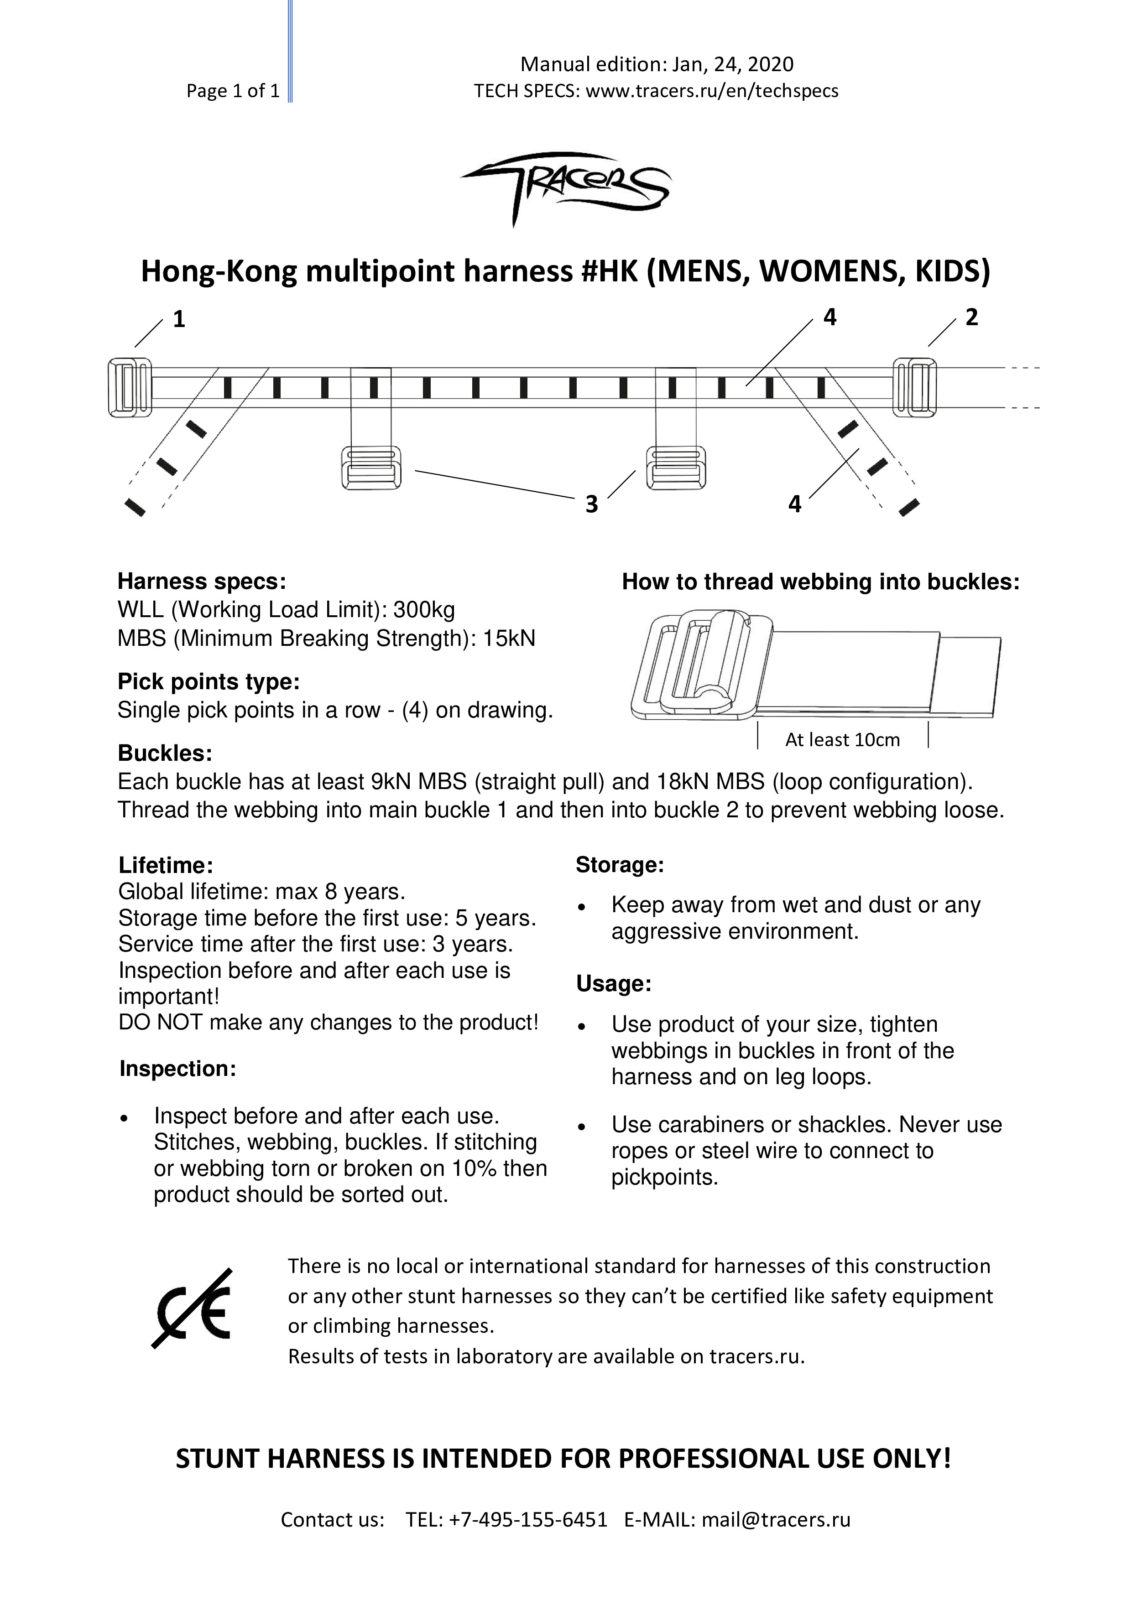 Martial arts waist harness manual, technical specification